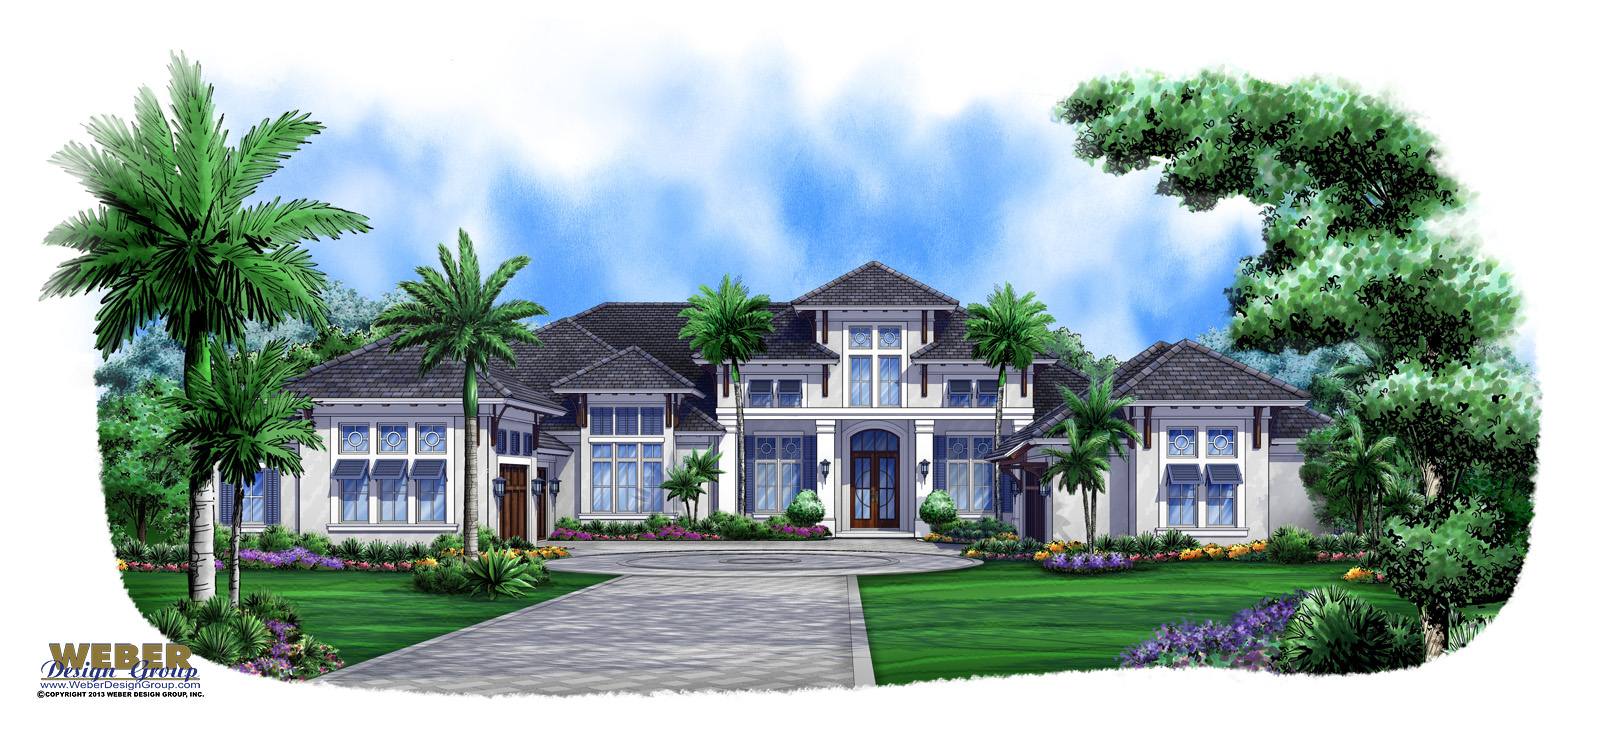 caribbean home designs.  Caribbean Breeze House Plan Island Architecture with Open Design